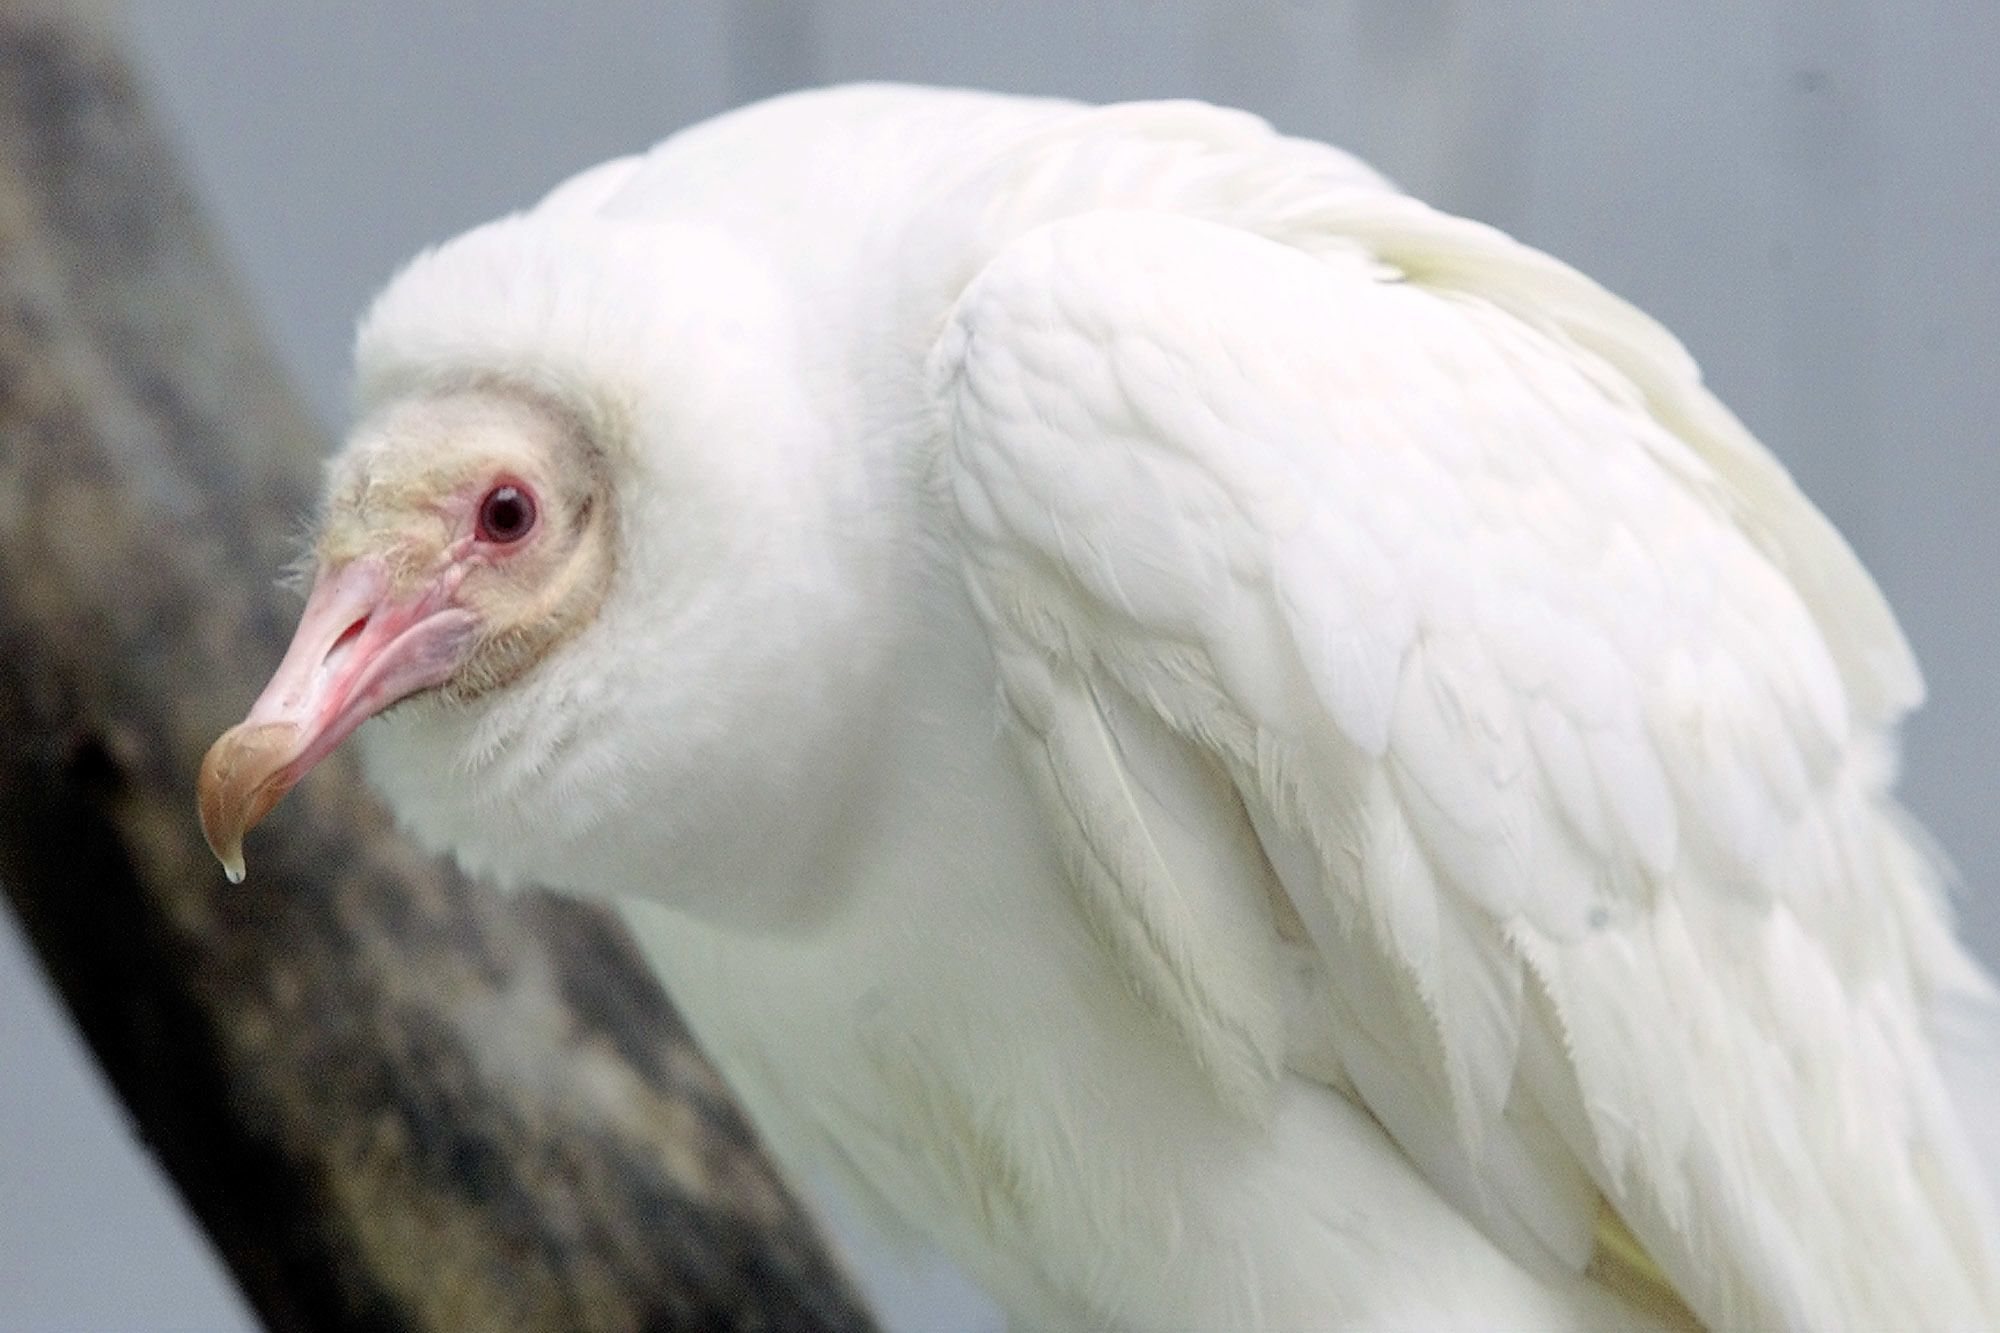 An albino Black Vulture, the only one known in existence and just the second ever seen, sits on his perch at the World Bird Sanctuary Thursday, April 25, 2002 in St. Louis.  The bird was sent to the WBS five weeks ago after it was found in Michigan, where officials feared that it would not survive in the wild. (AP Photo/Tom Gannam) via @AOL_Lifestyle Read more…